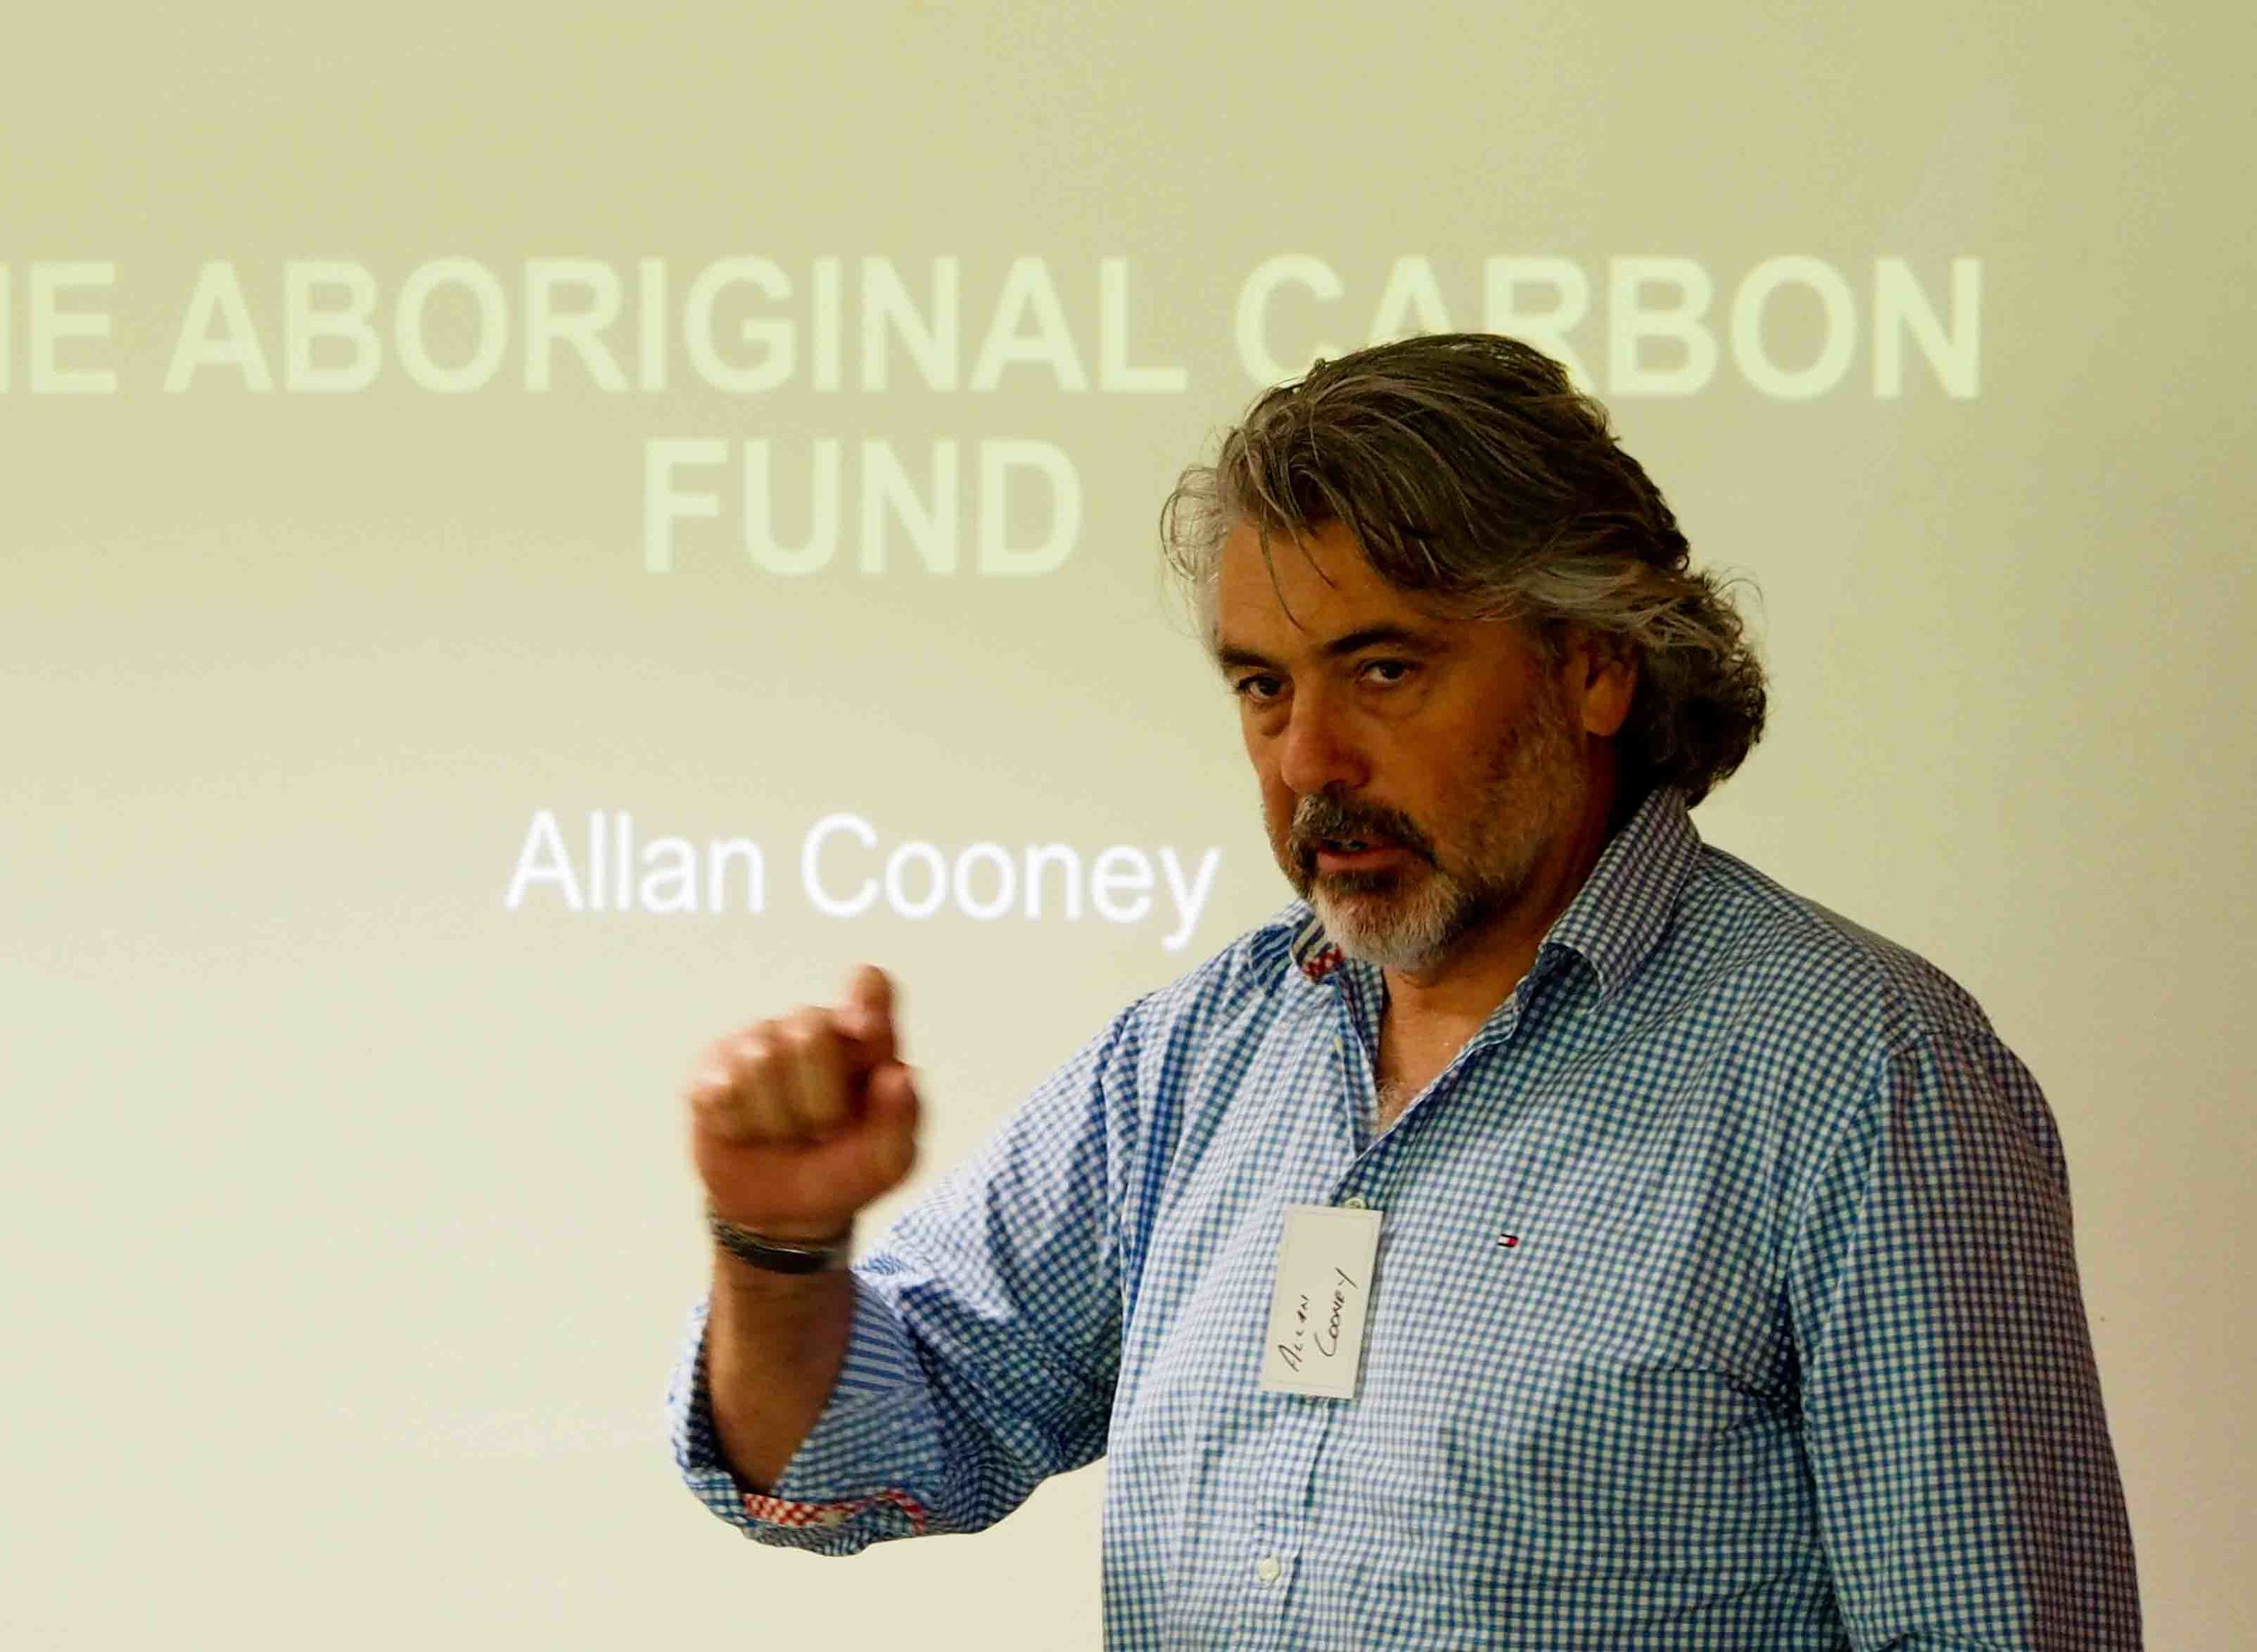 Allan Cooney, director and founder, telling the Aboriginal Carbon Fund story